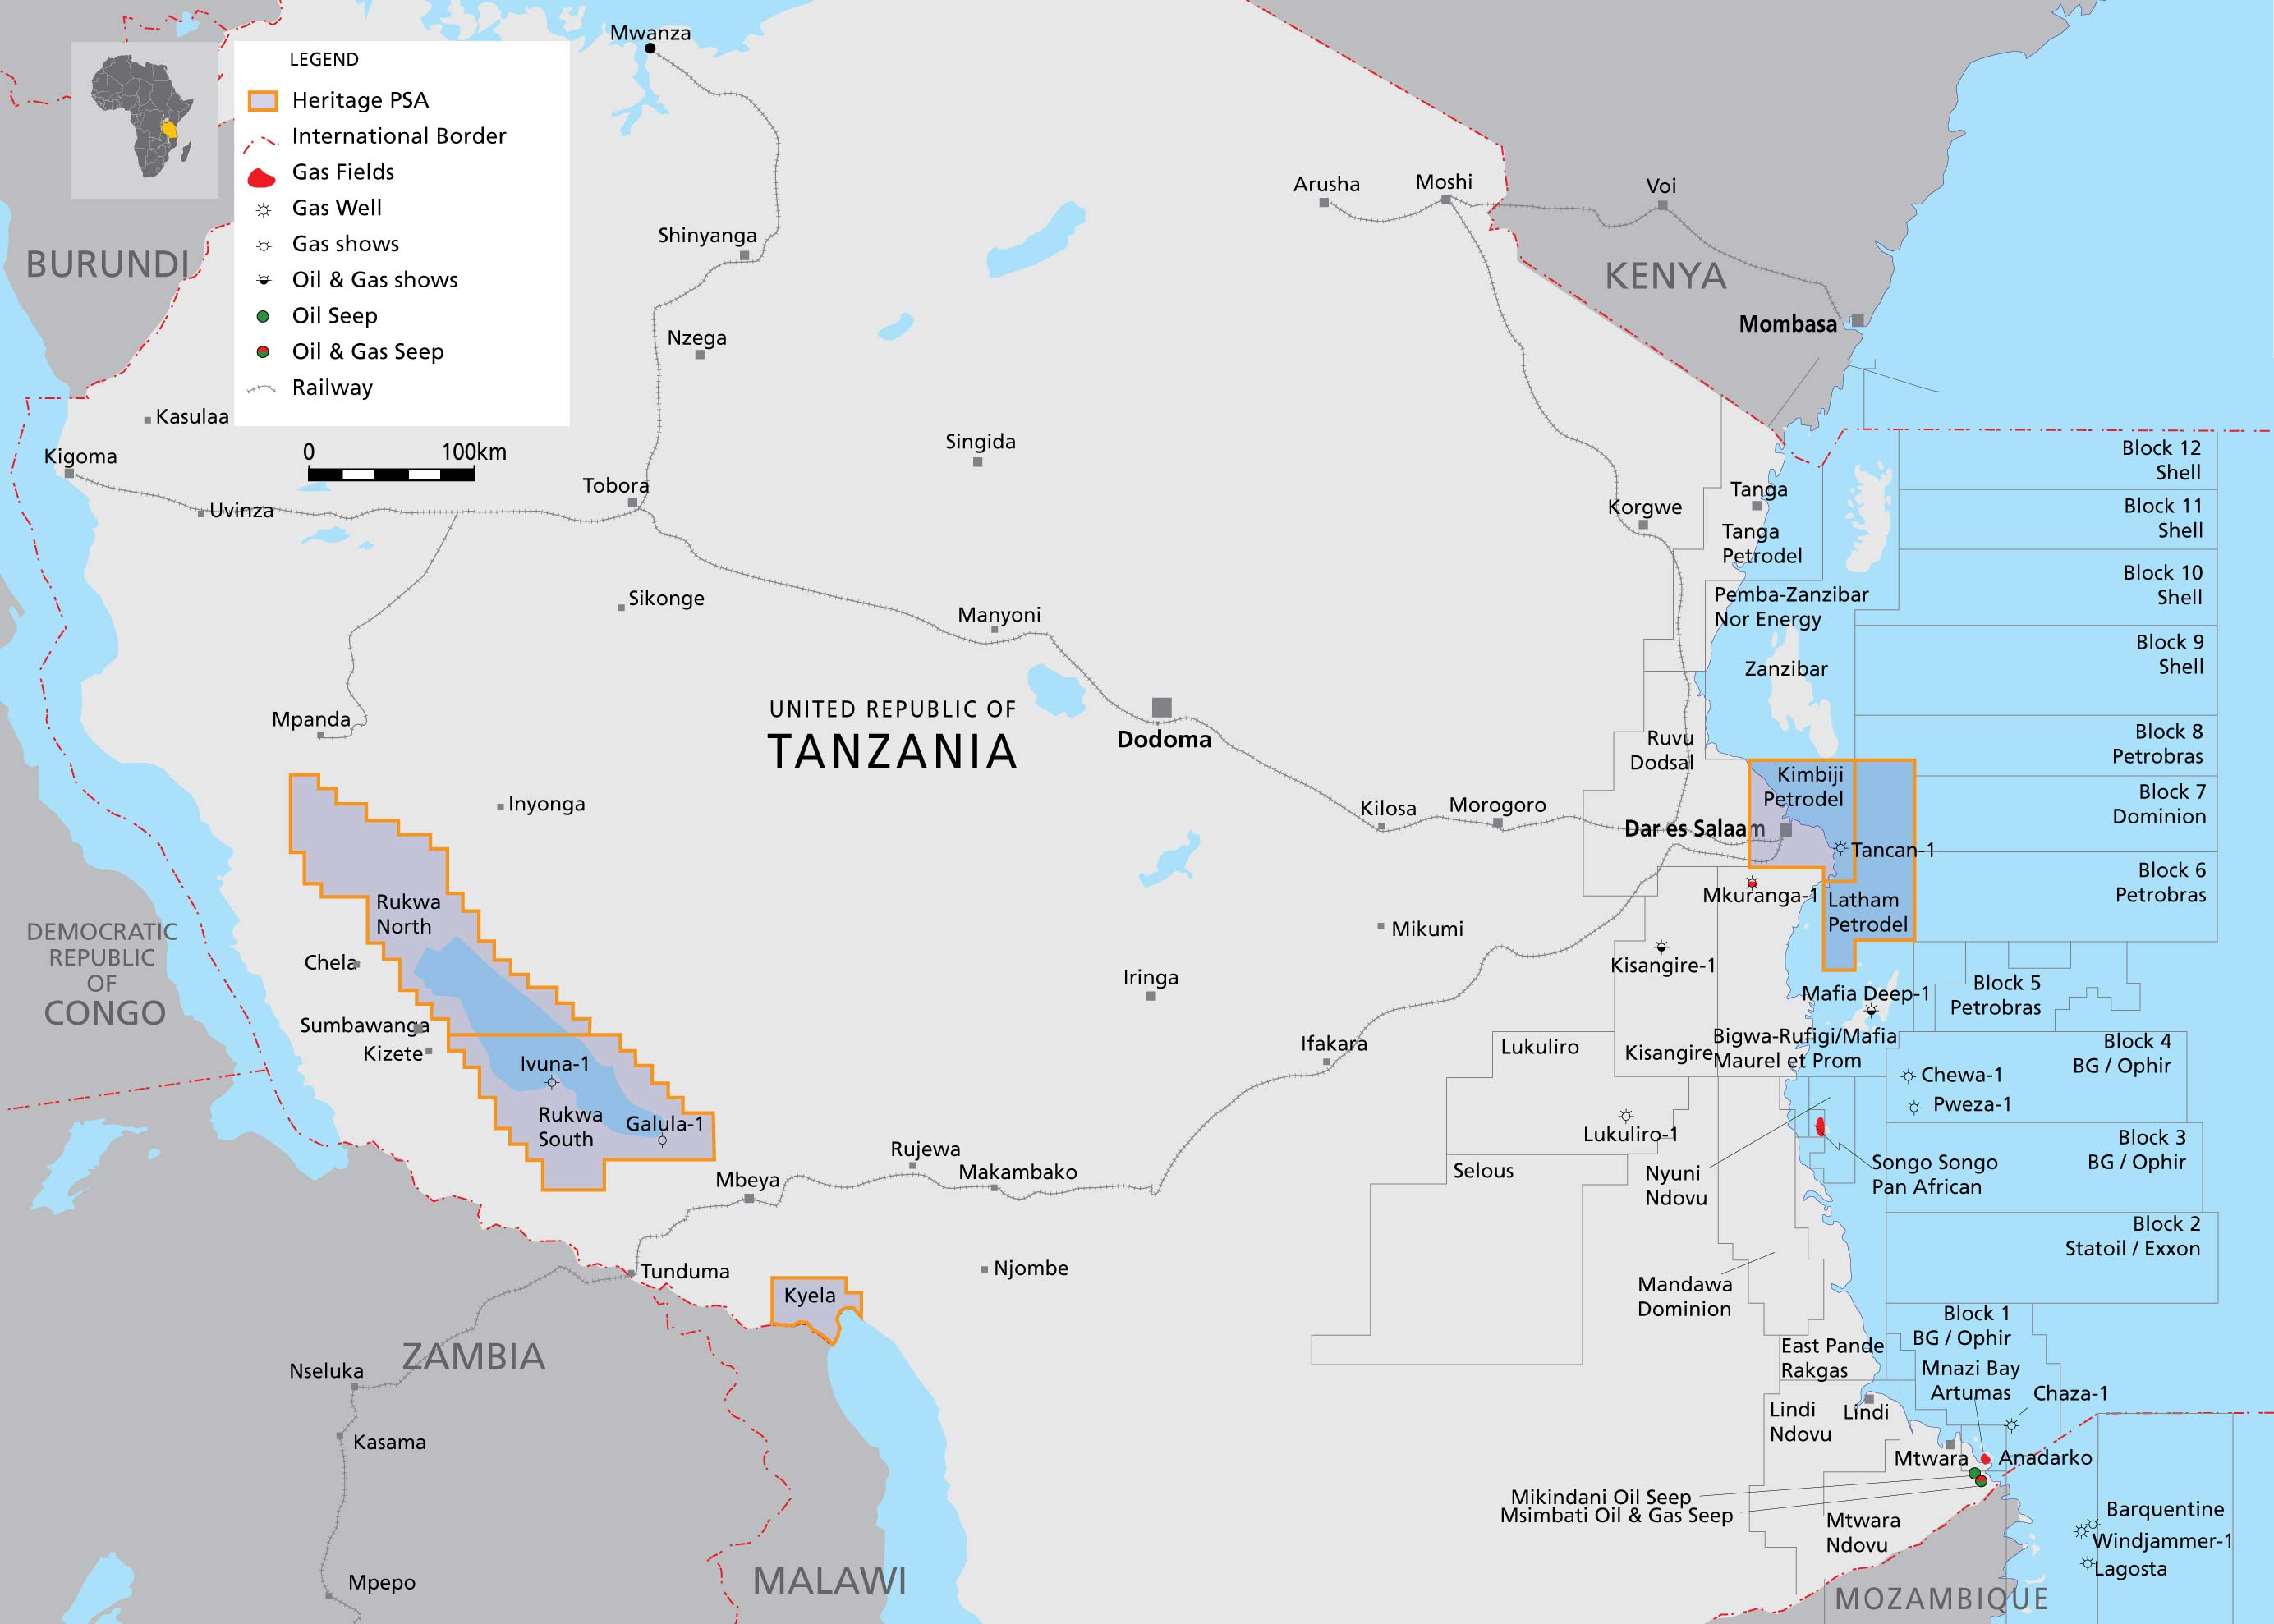 The claims on Tanzanian oil and gas by different companies according to the map of Heritage Oil